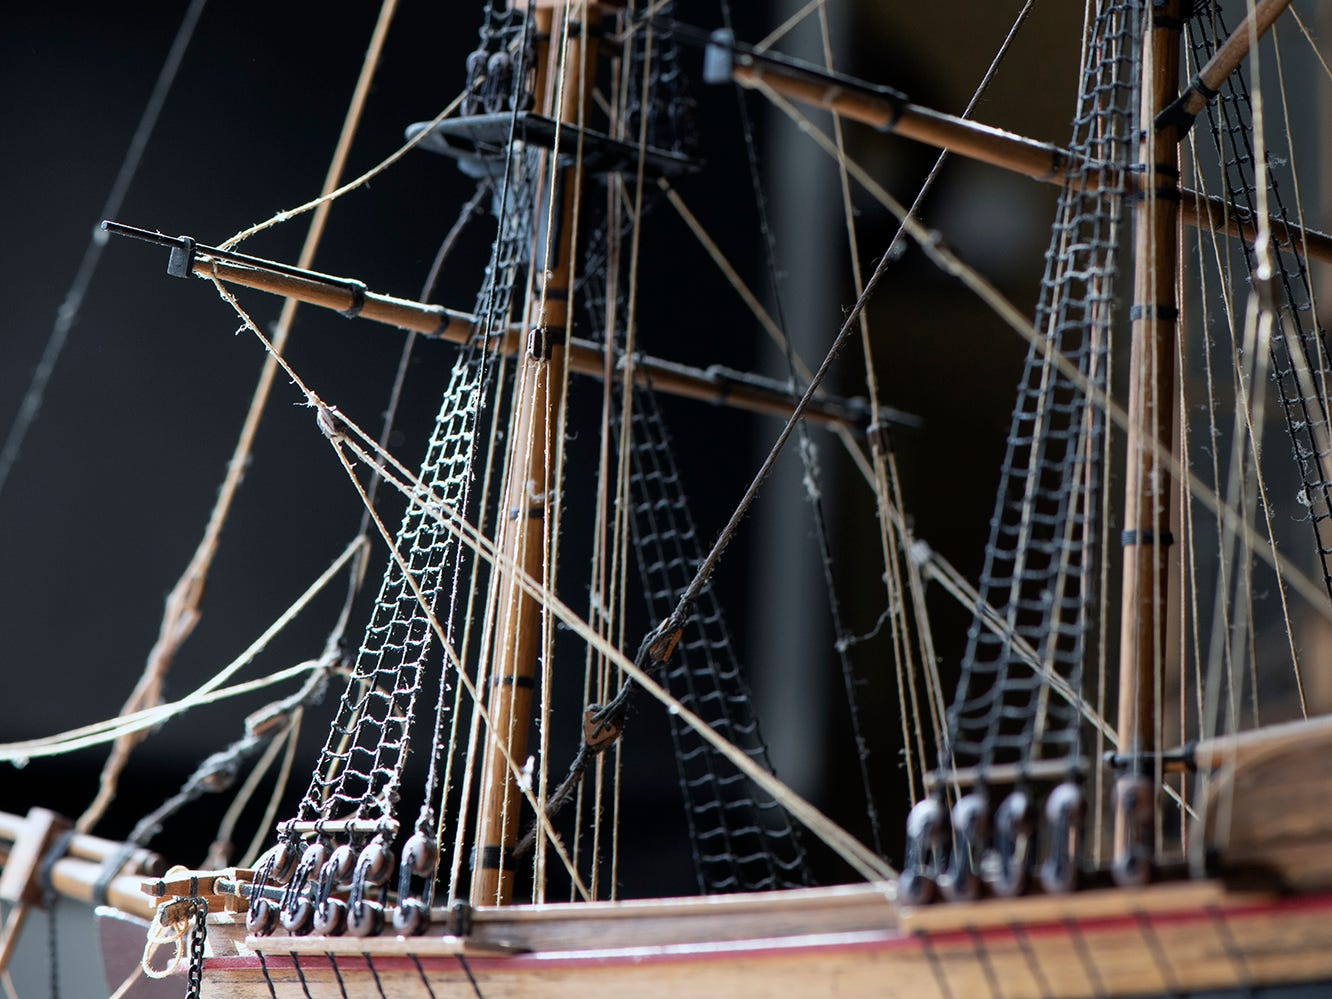 The tall ship models pictured were made by Roland Whitmire in the 1970s at his home on West Philadelphia Street in York. Dennis Kunkle, who has owned the home for 15 years, recently bought them back at auction and plans on cleaning and displaying them again in the home.